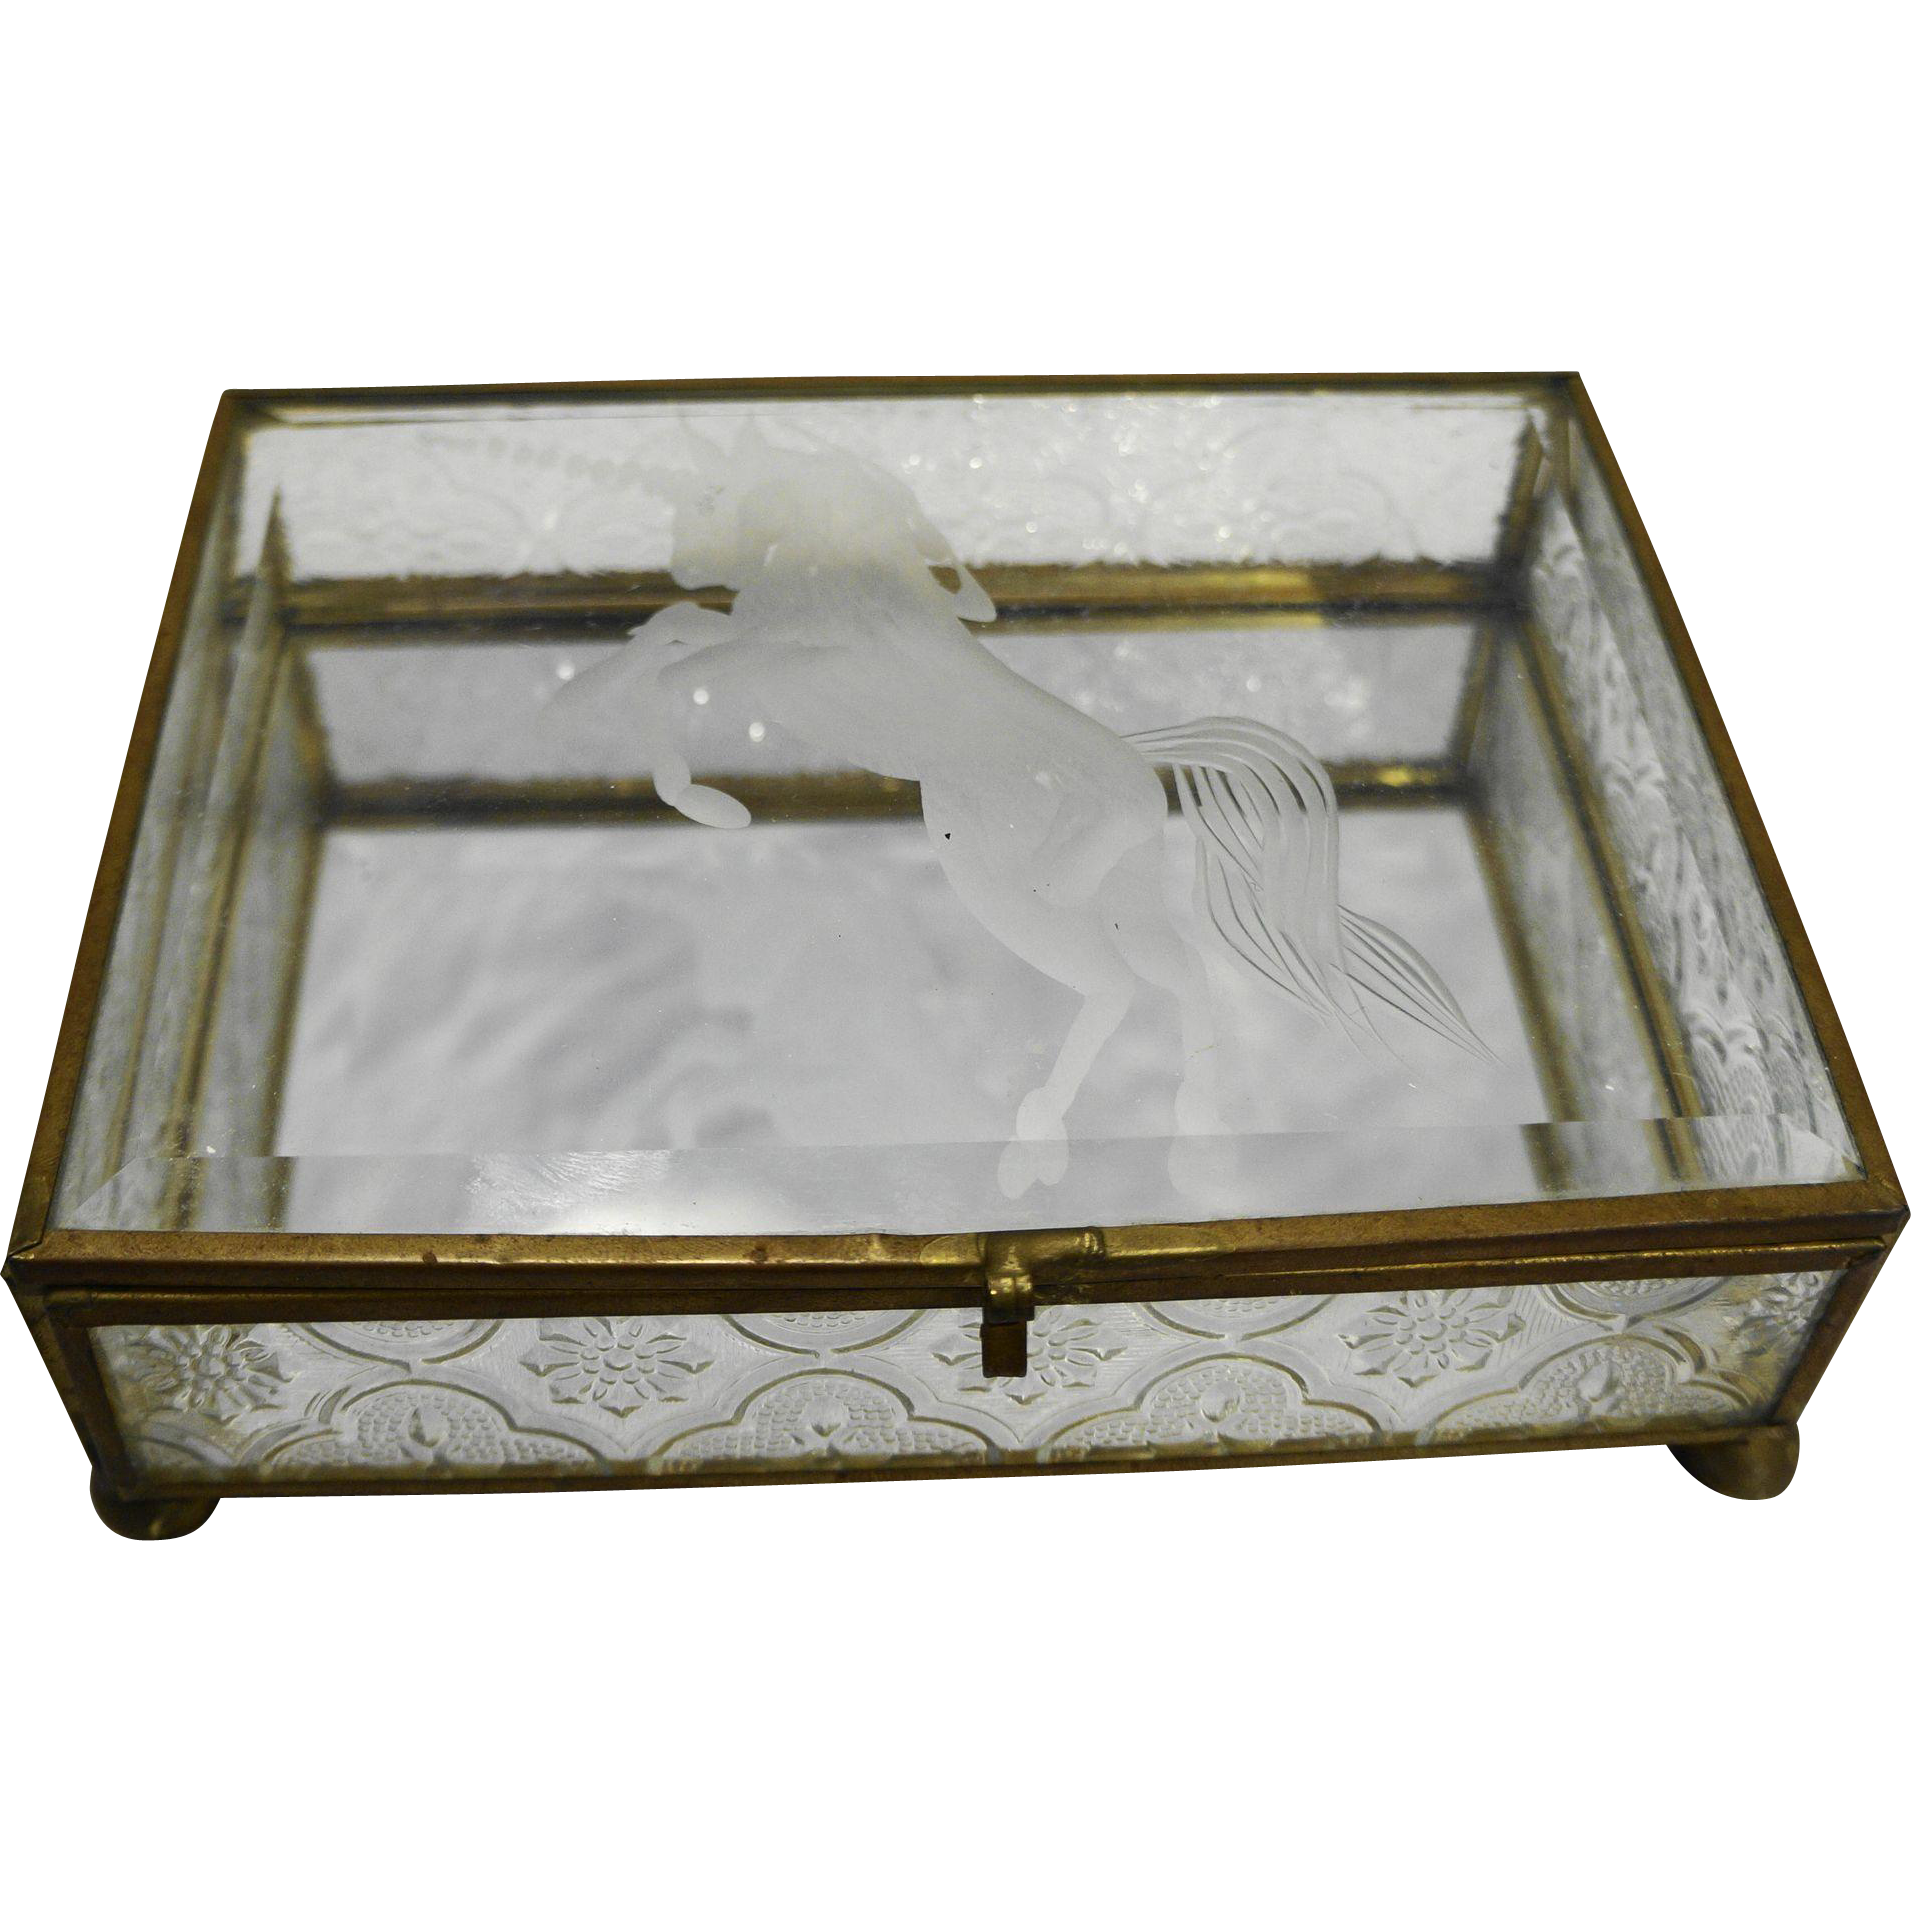 Etched Glass Unicorn Dresser Casket Trinket Jewelry Box Brass Made in Taiwan